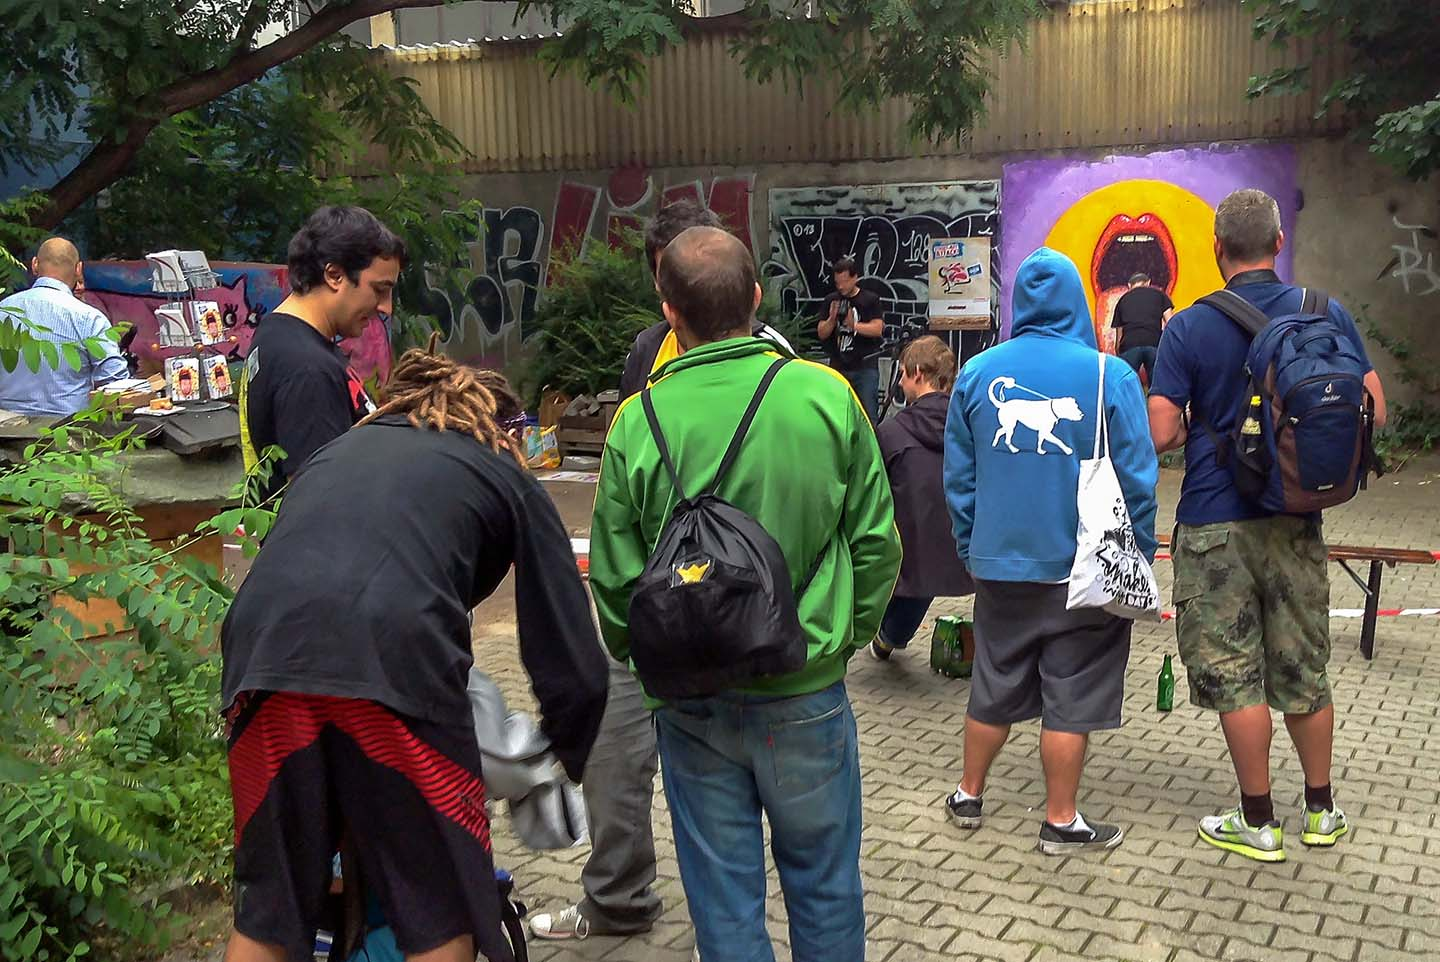 Visitors by the Painting of a tongue by Street Artist Jimmy C. aka. James Cochran in Berlin